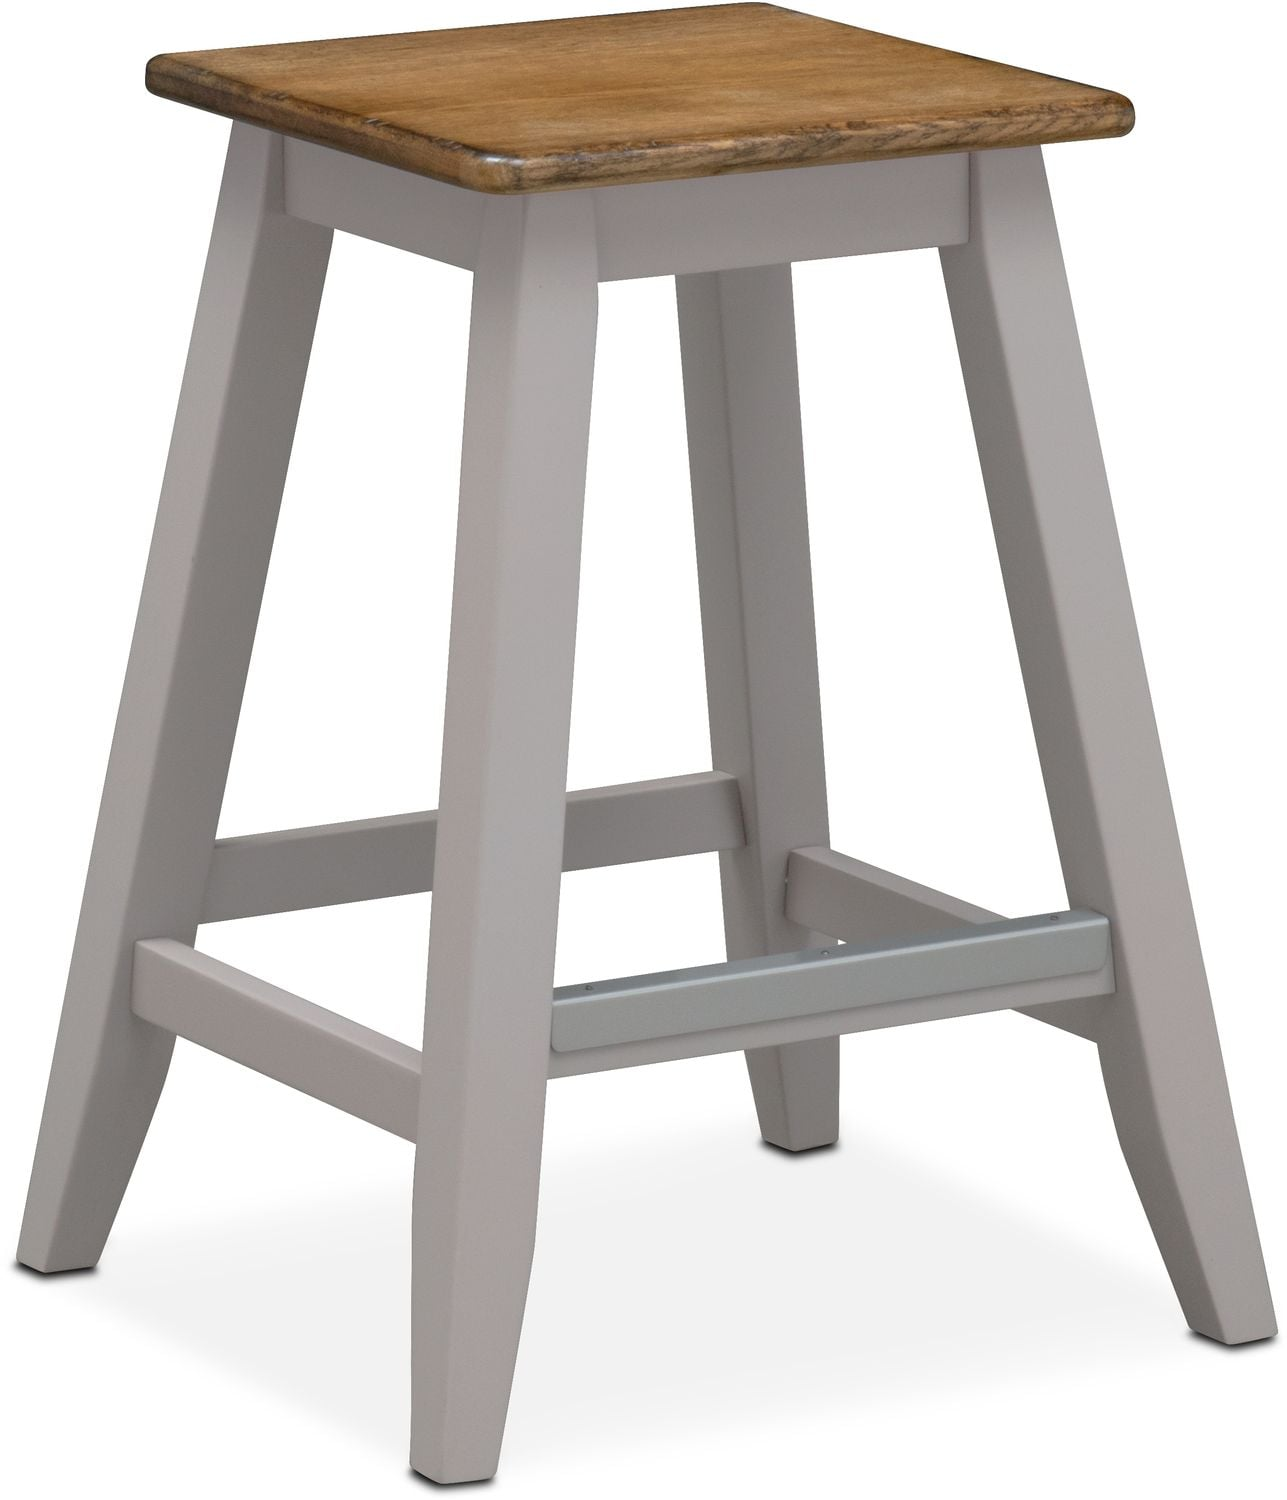 oak counter stool nantucket counter height stool oak and gray value city 1131